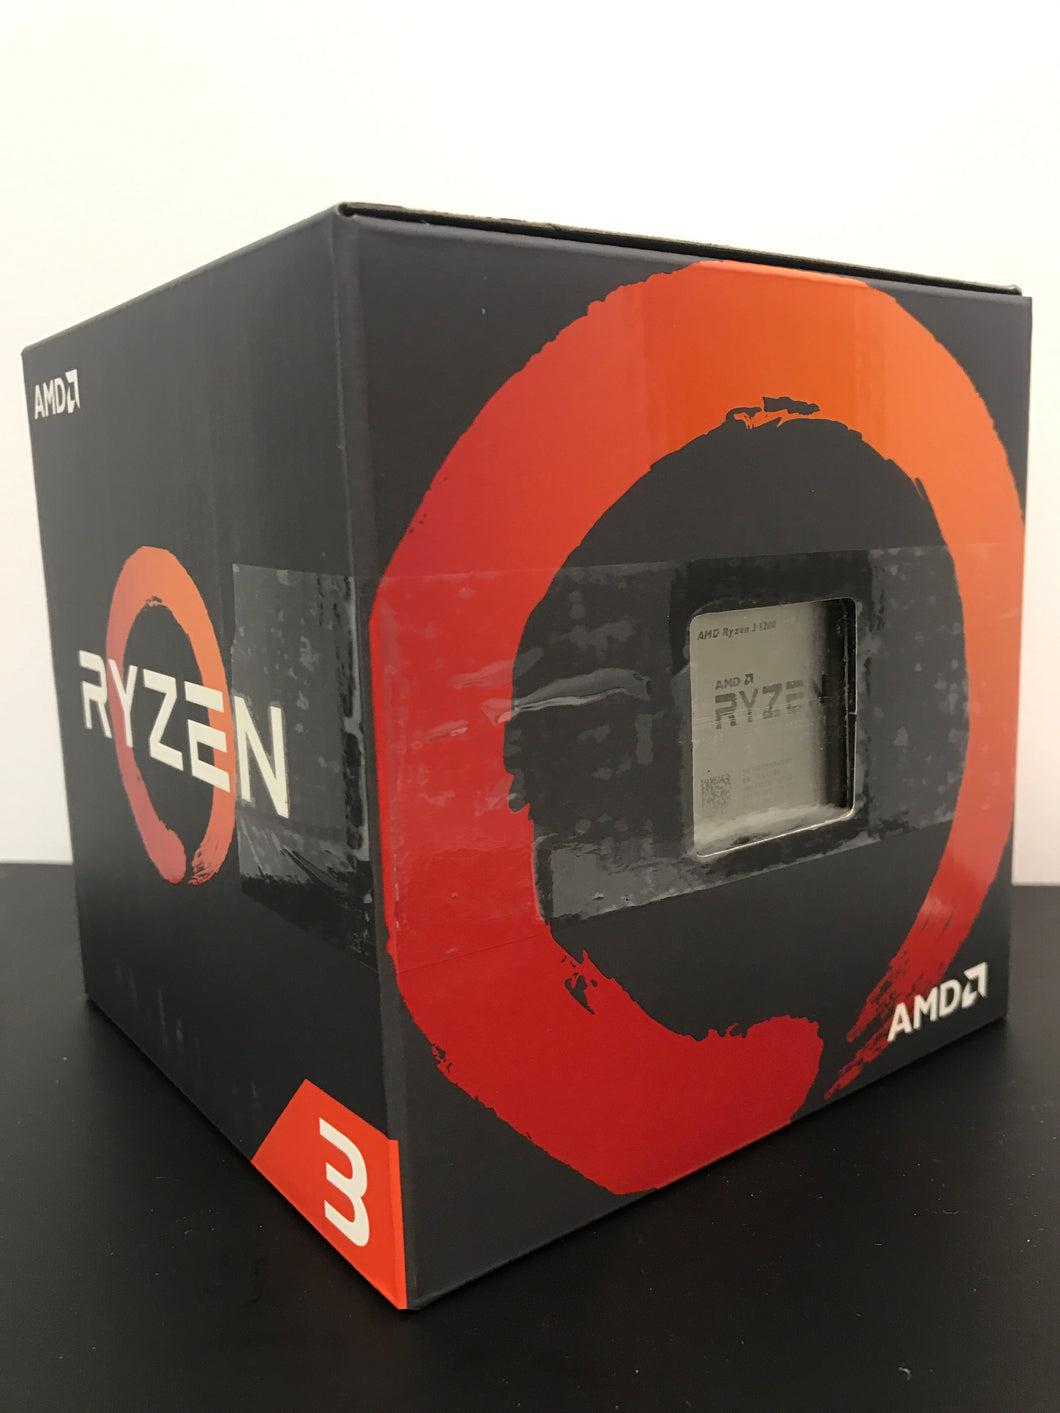 AMD Ryzen 3 1200 CPU with Wraith Stealth Cooler - Silver